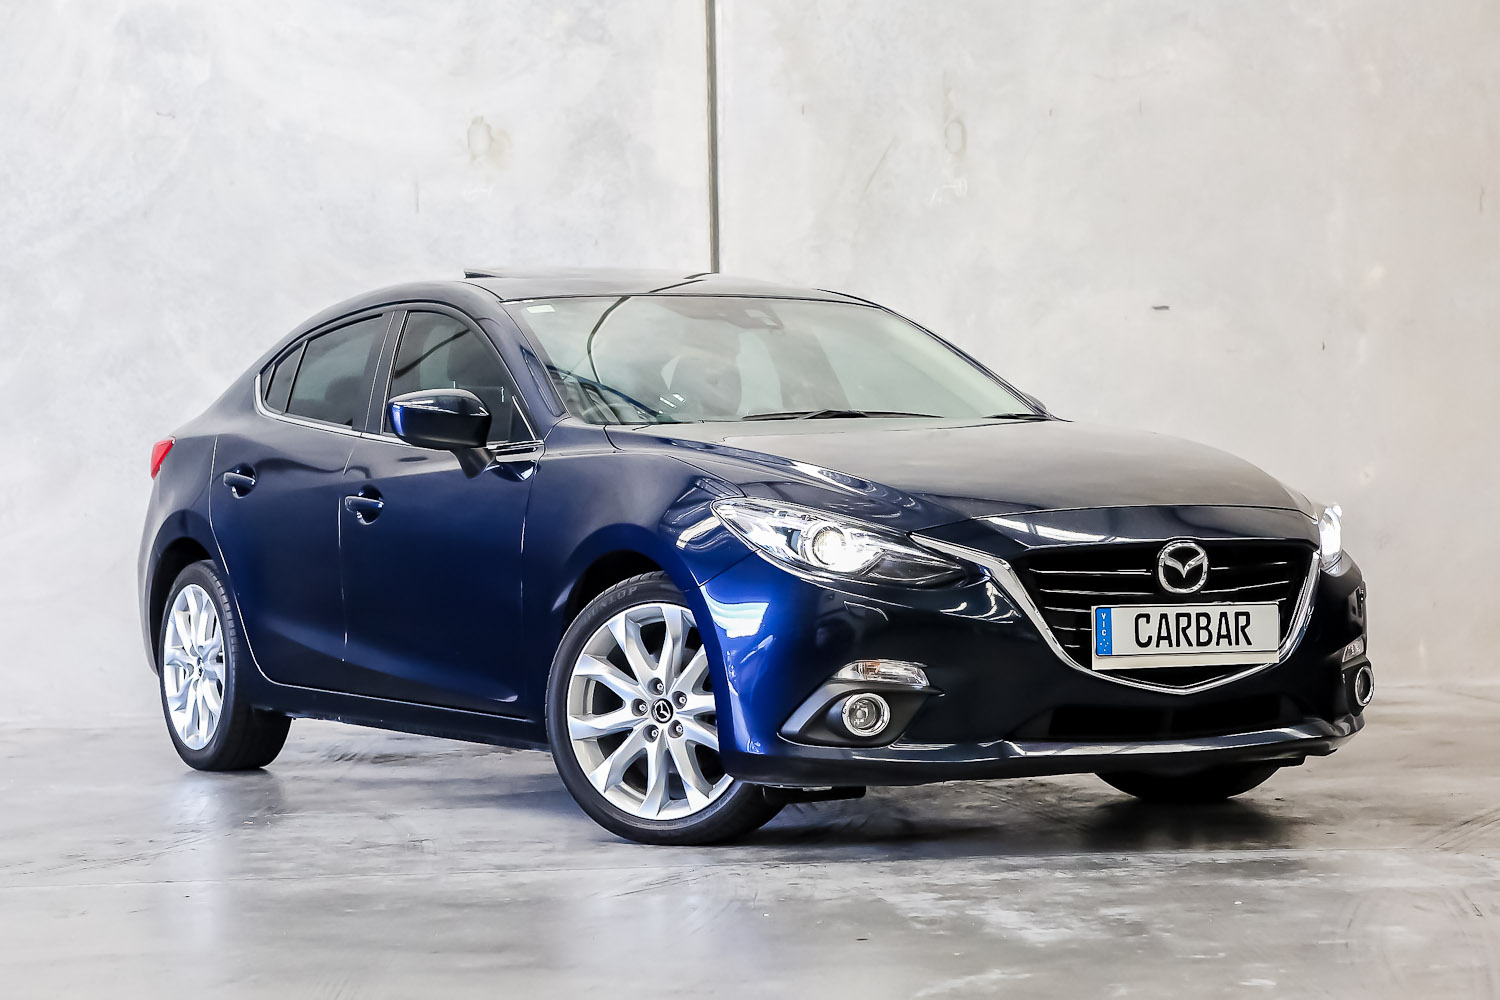 mazda 3 flashing car symbol with lock images meaning of text symbols. Black Bedroom Furniture Sets. Home Design Ideas